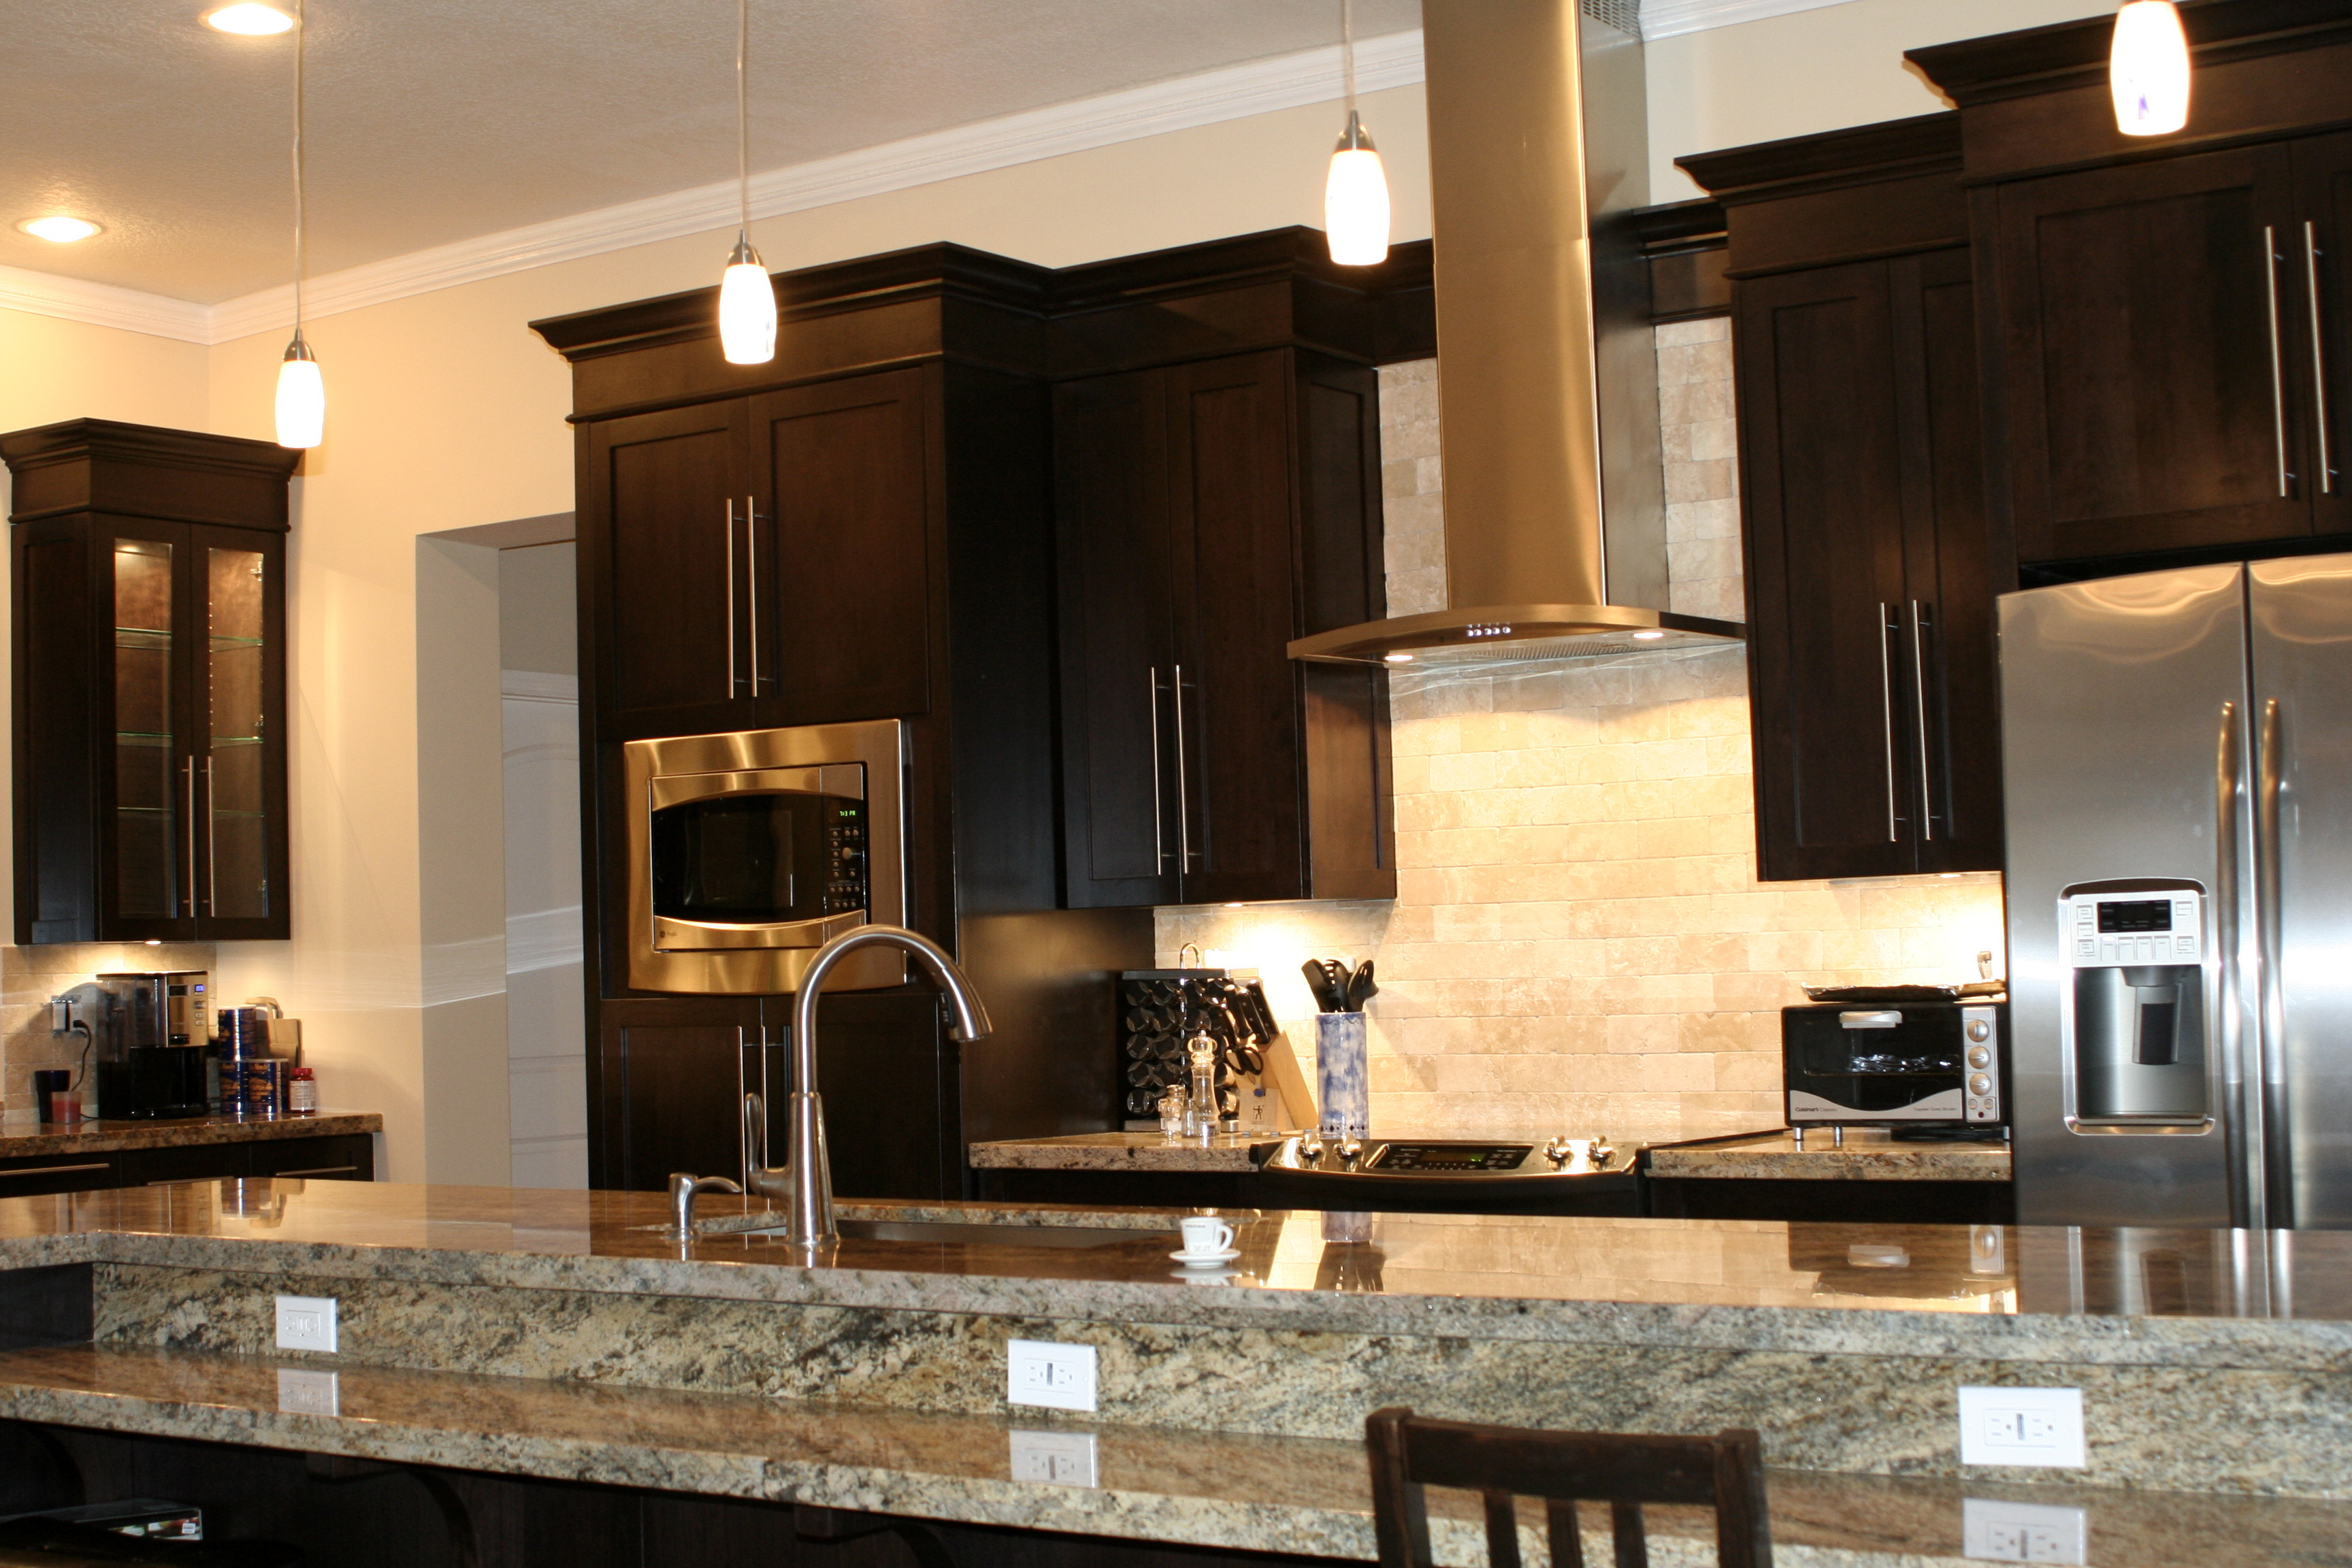 custom kitchen cabinets designs. Kitchen Remodeling Custom Cabinets Designs